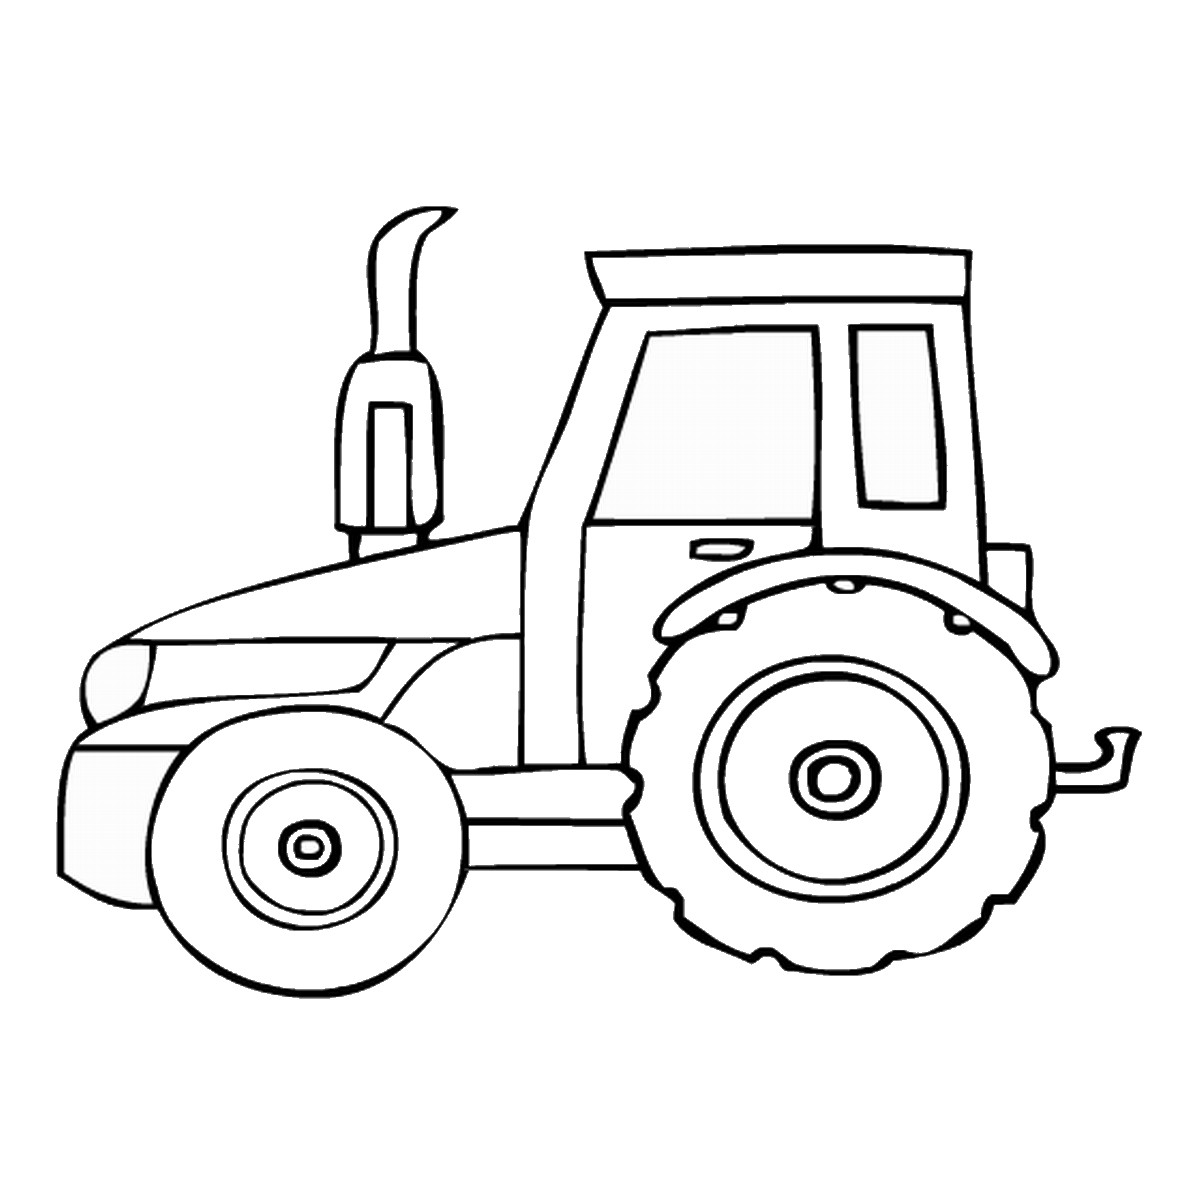 Free coloring pages of tractors to print for Tractor coloring pages to print